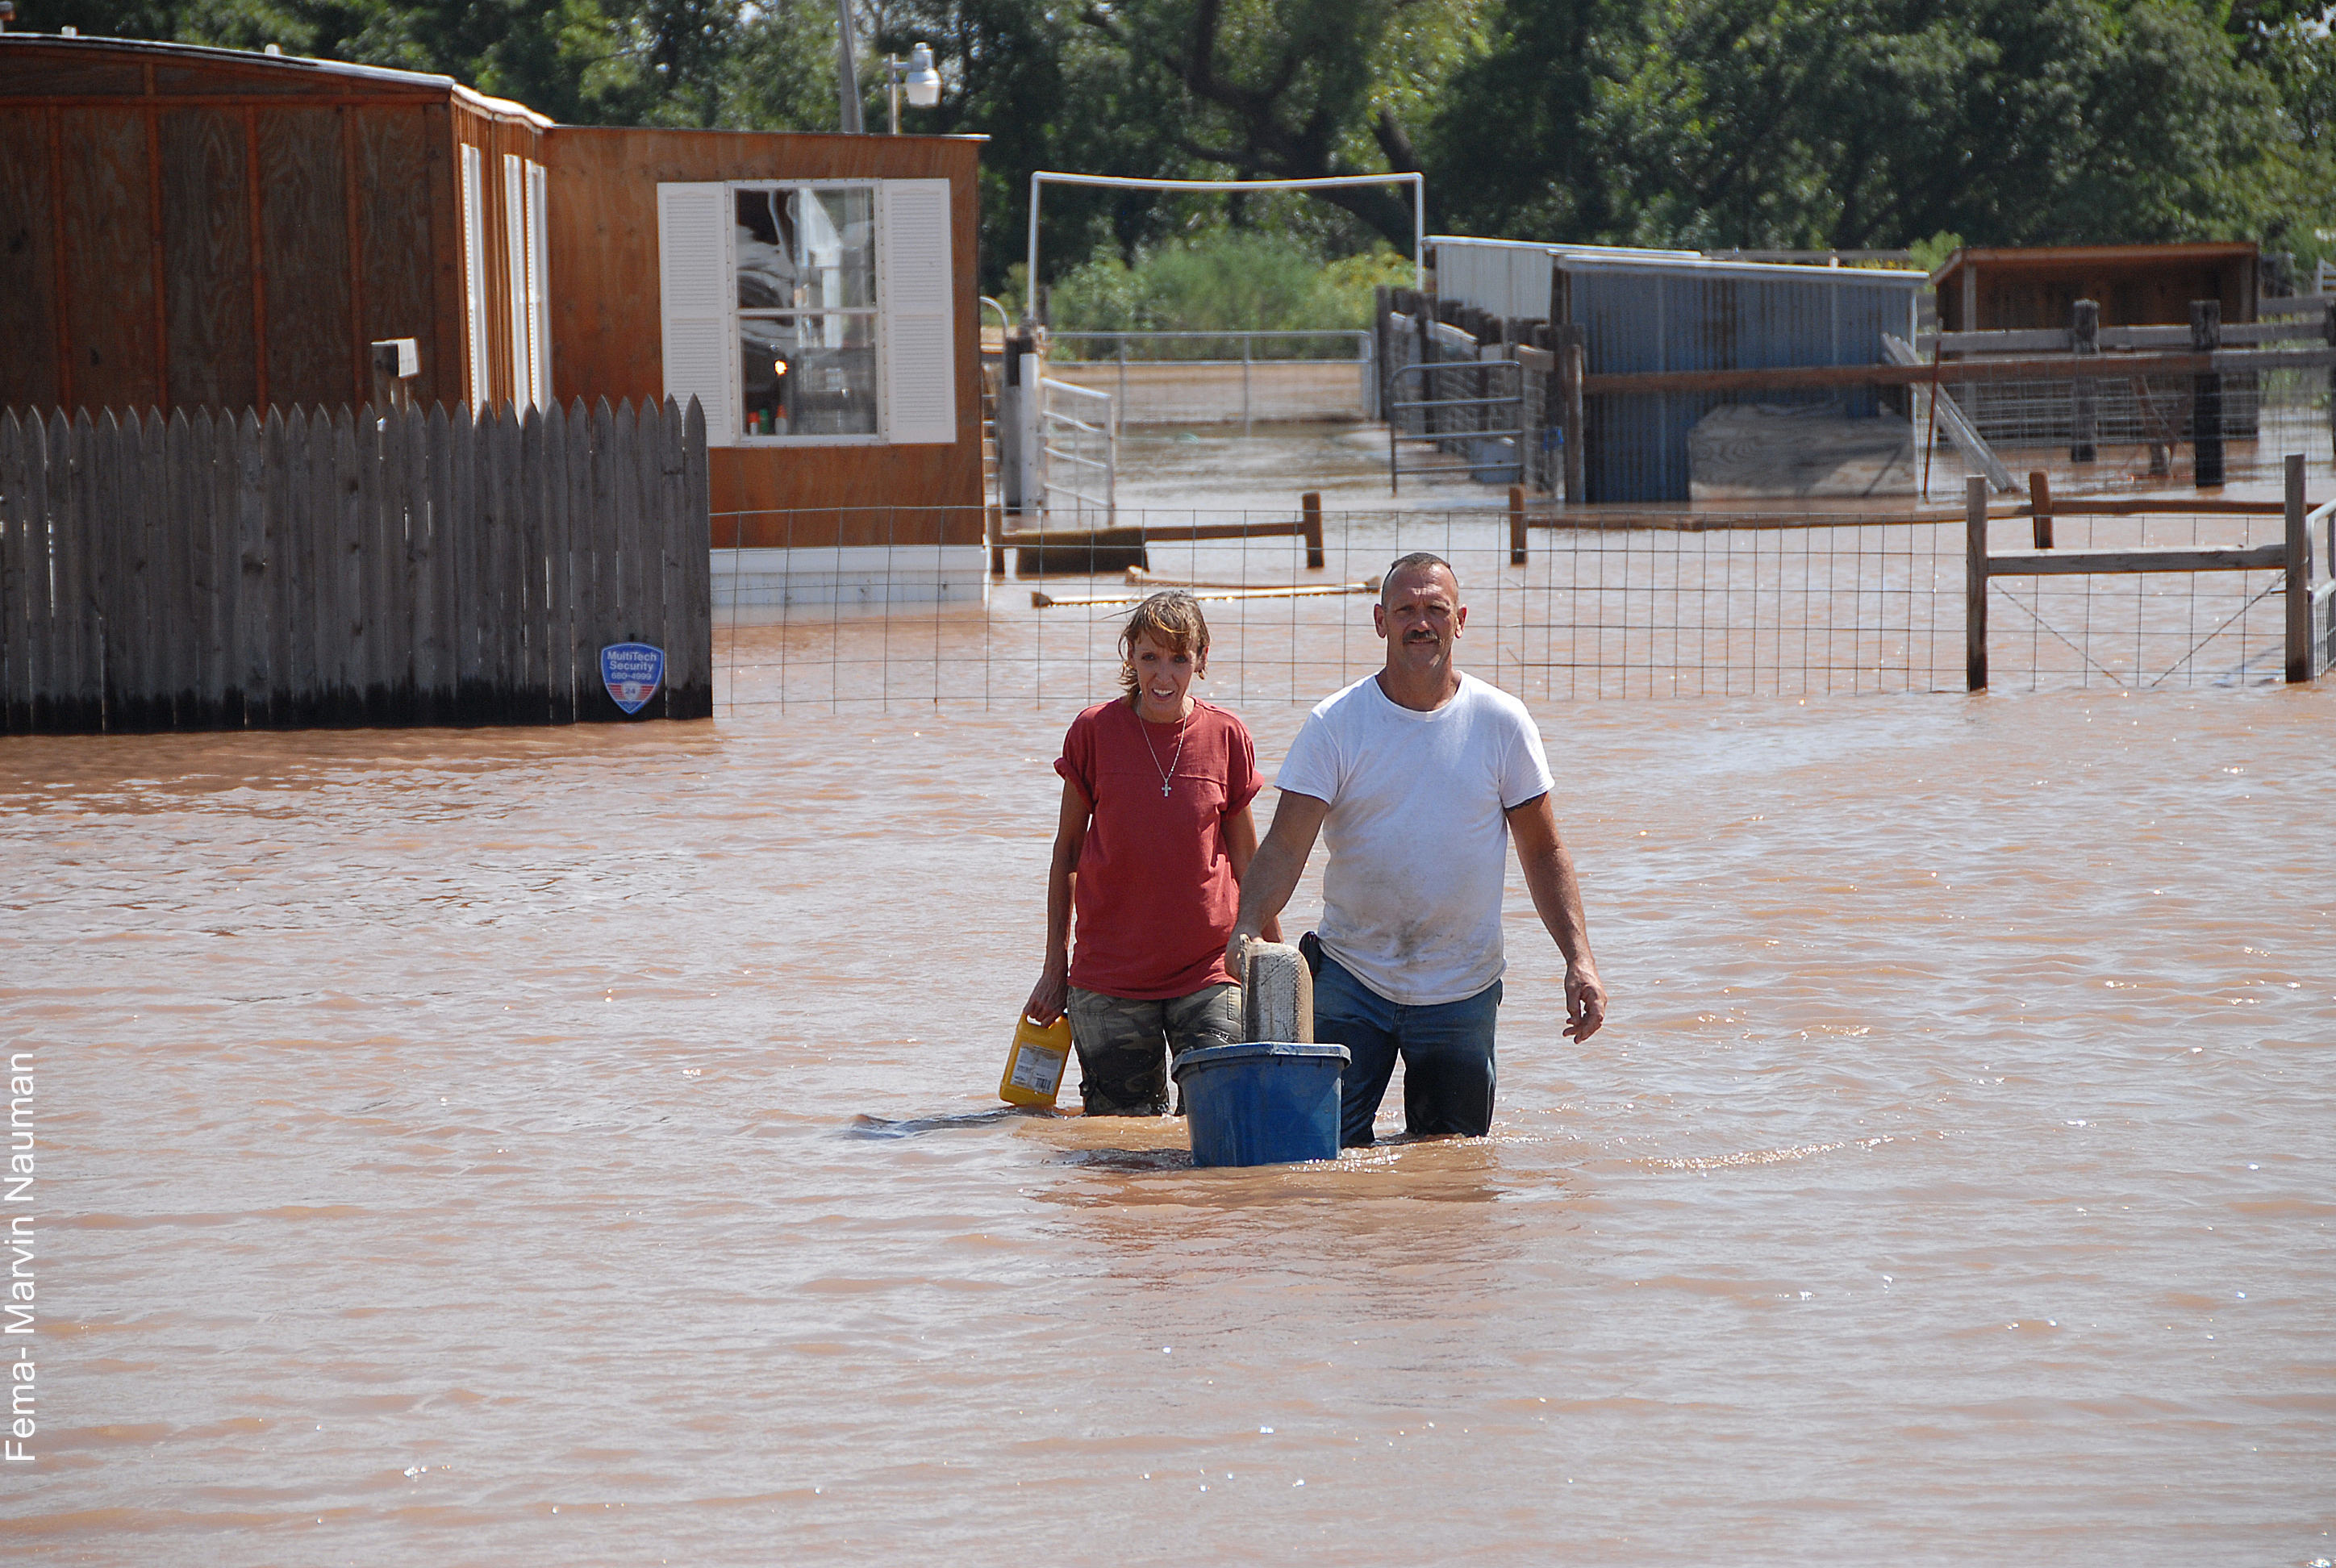 couple walking rhough flood waters